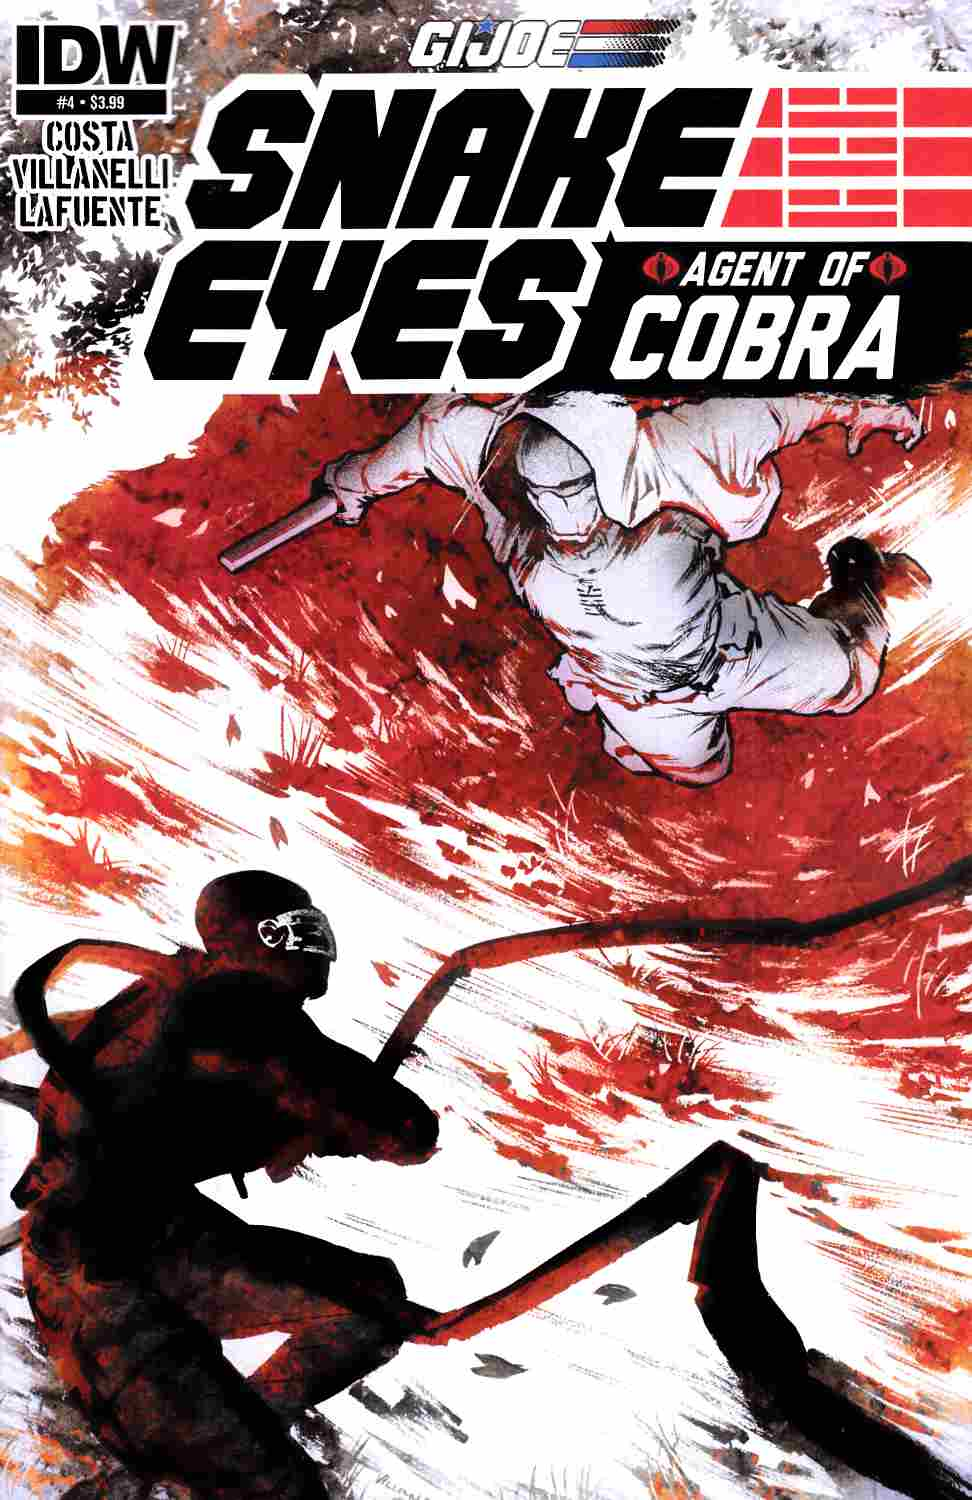 Gi Joe Snake Eyes Agent of Cobra #4 [IDW Comic]